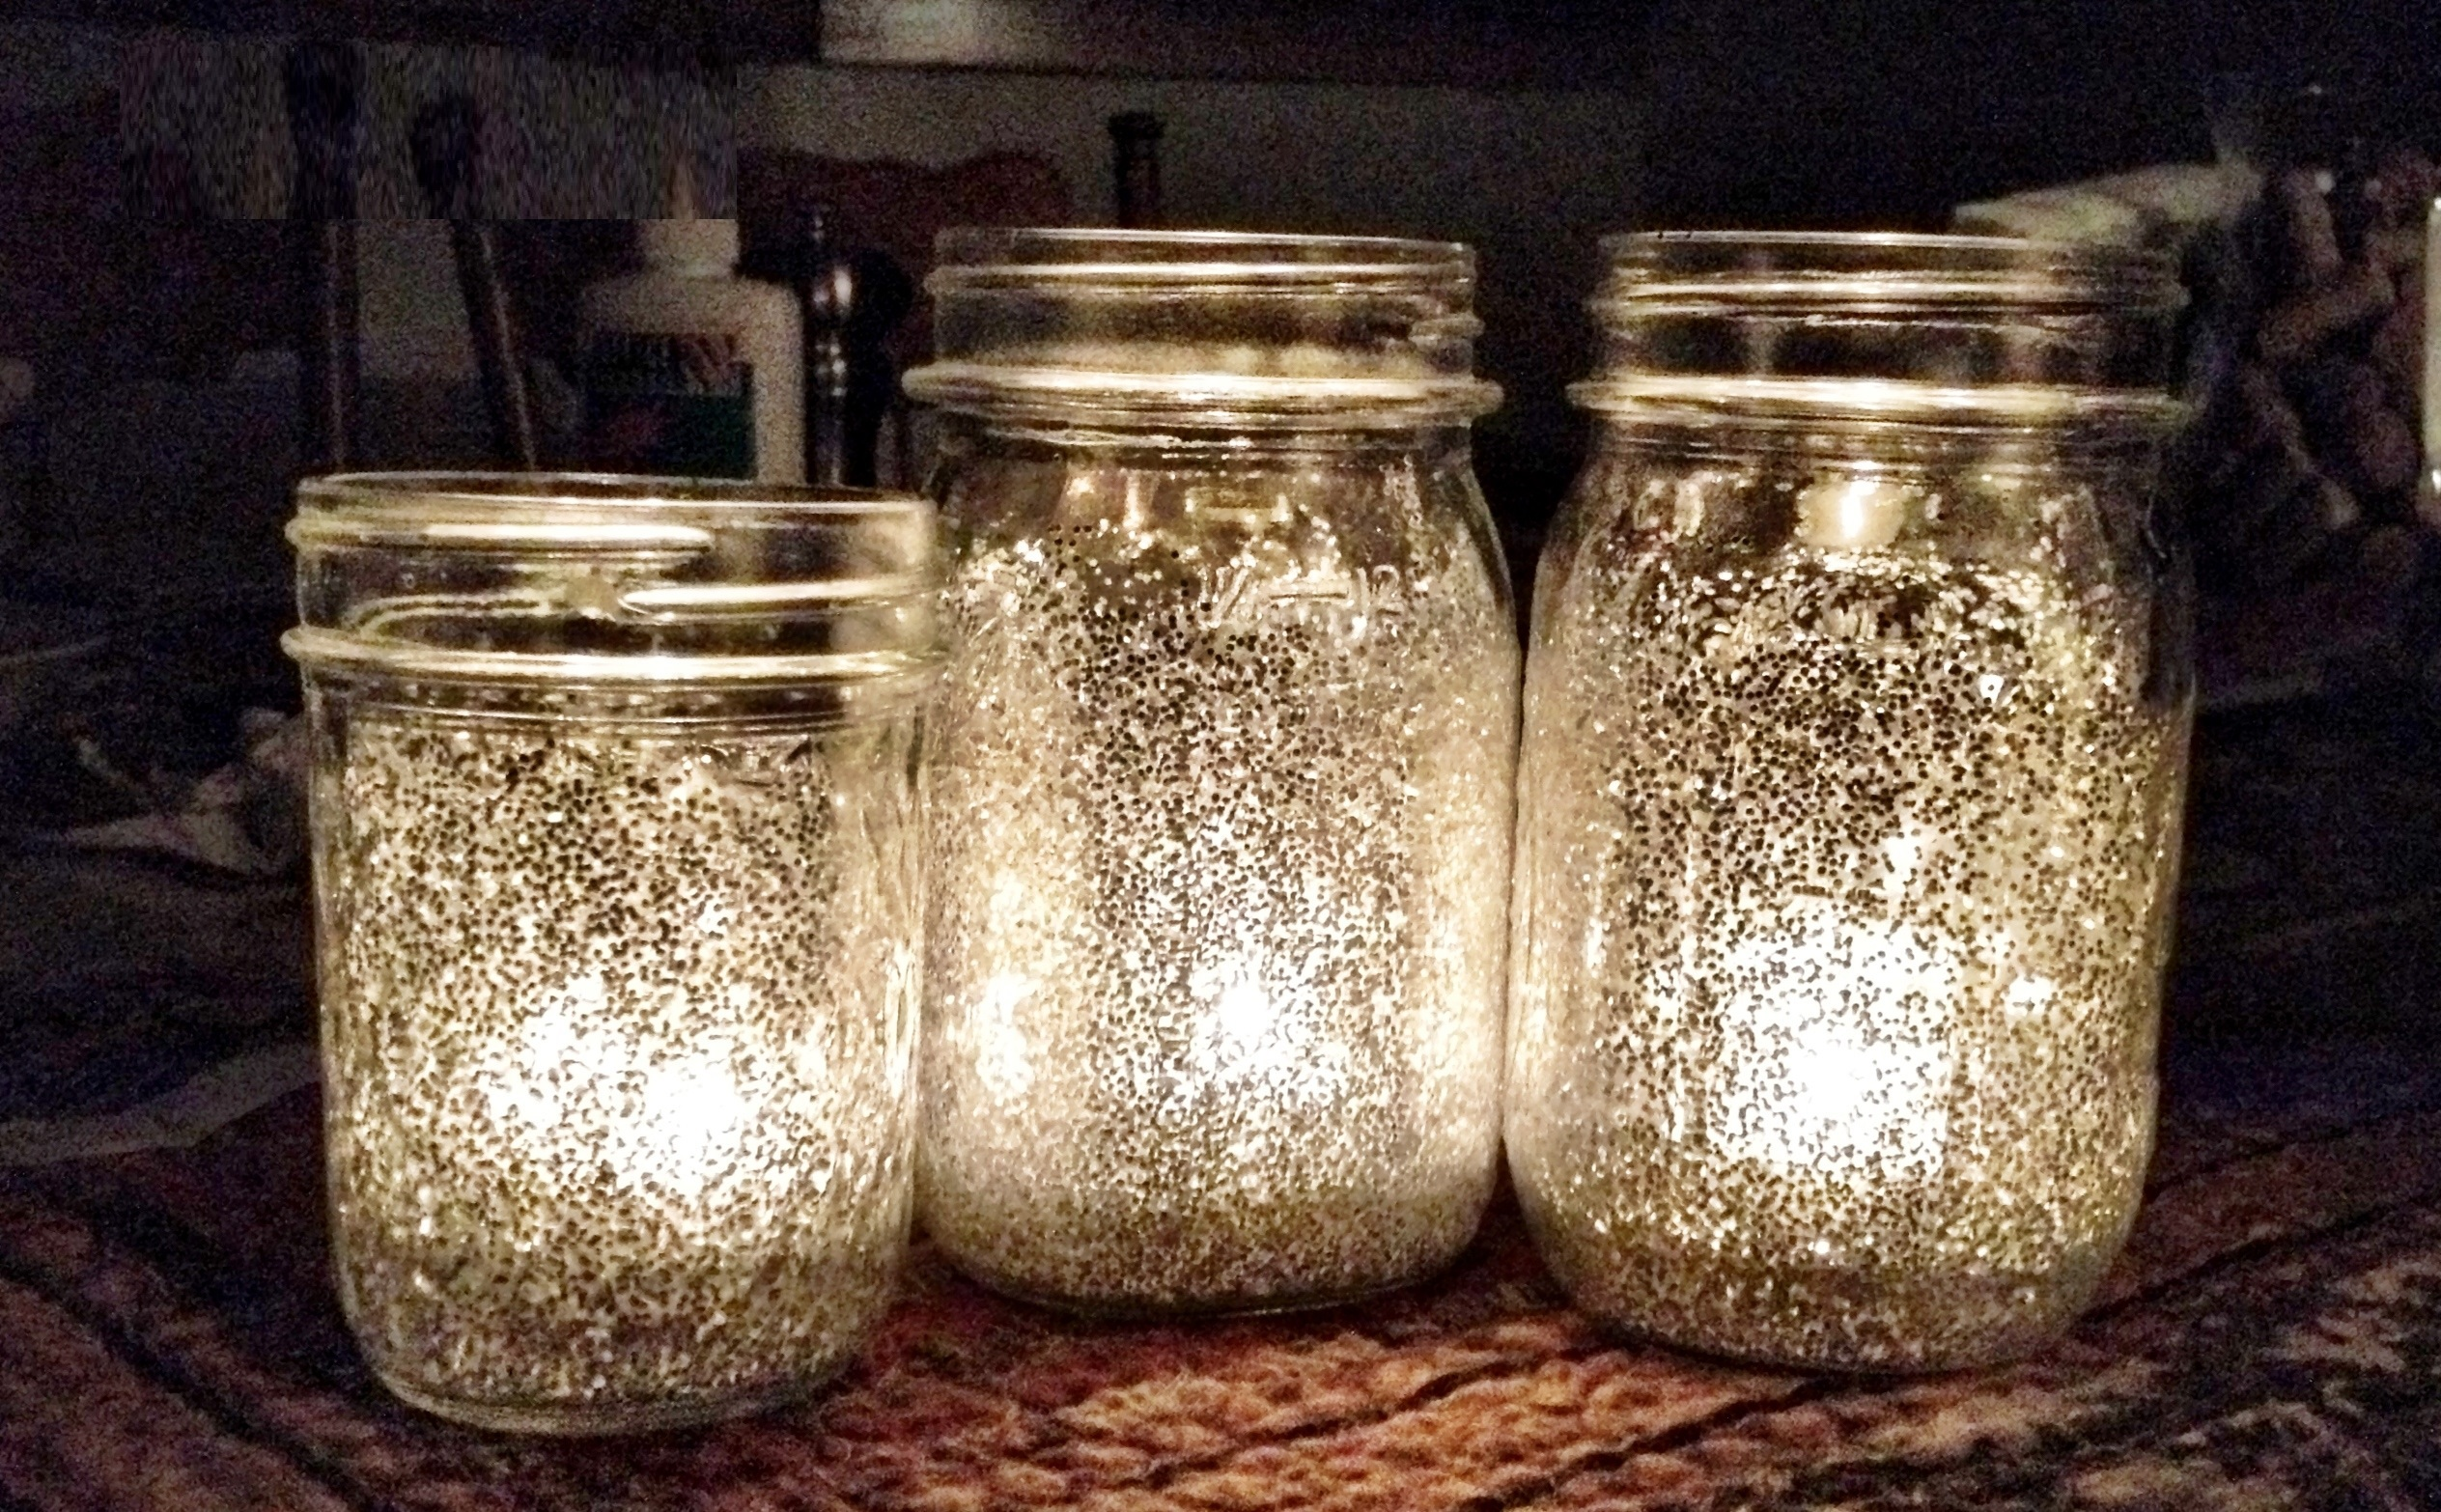 These 10 super easy diy ideas for diwali will brighten up your home image courtesy cakerypapery solutioingenieria Gallery